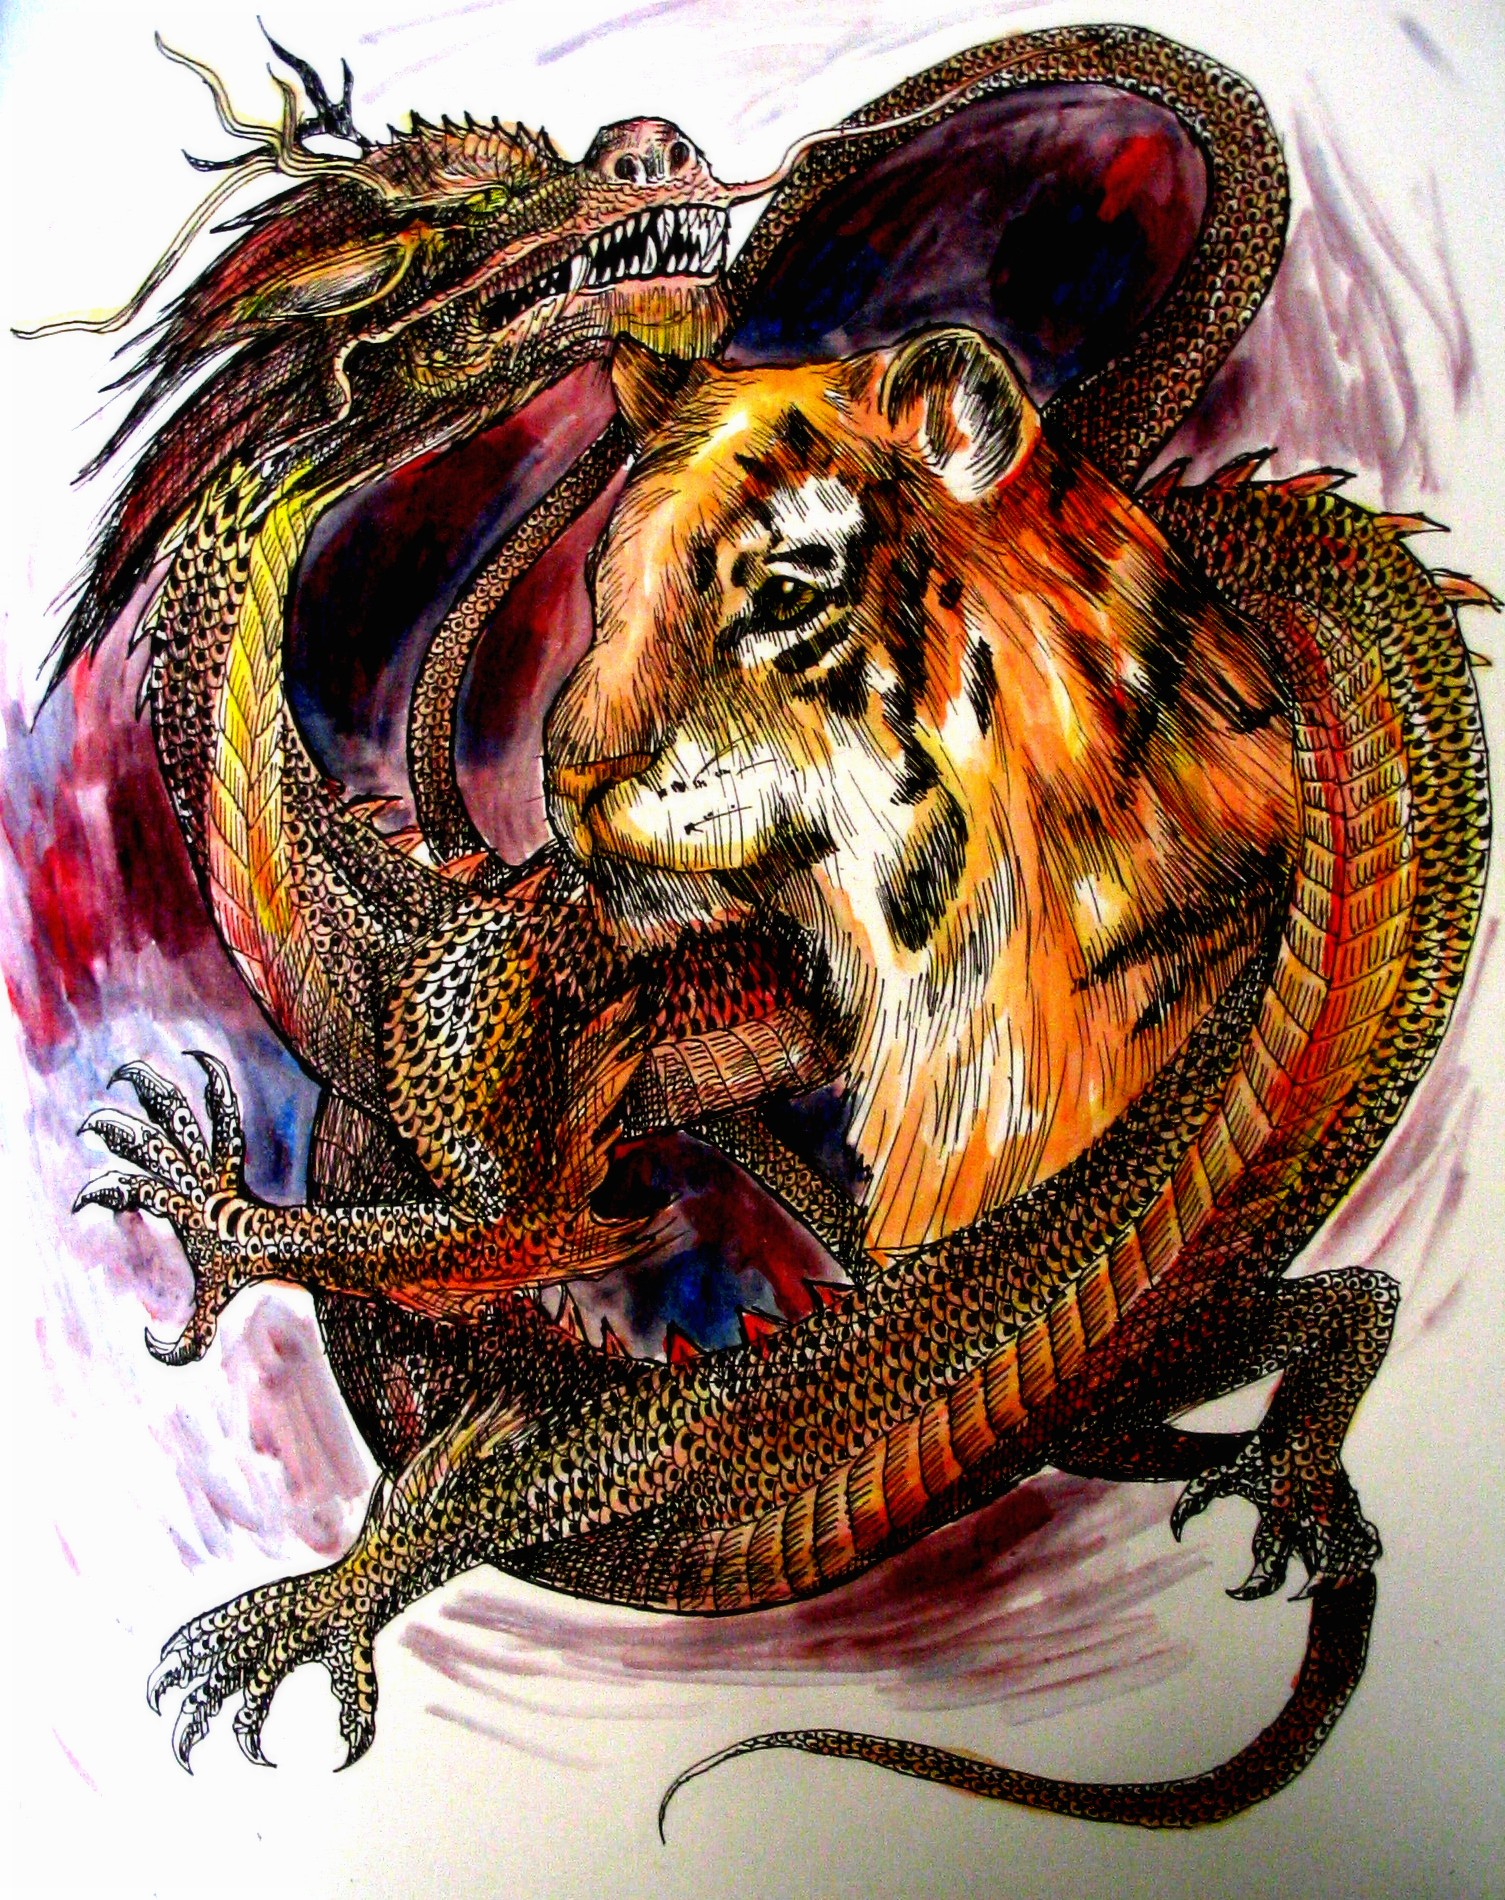 Tiger Vs Dragon Wallpaper Dragon and tiger by 1505x1900